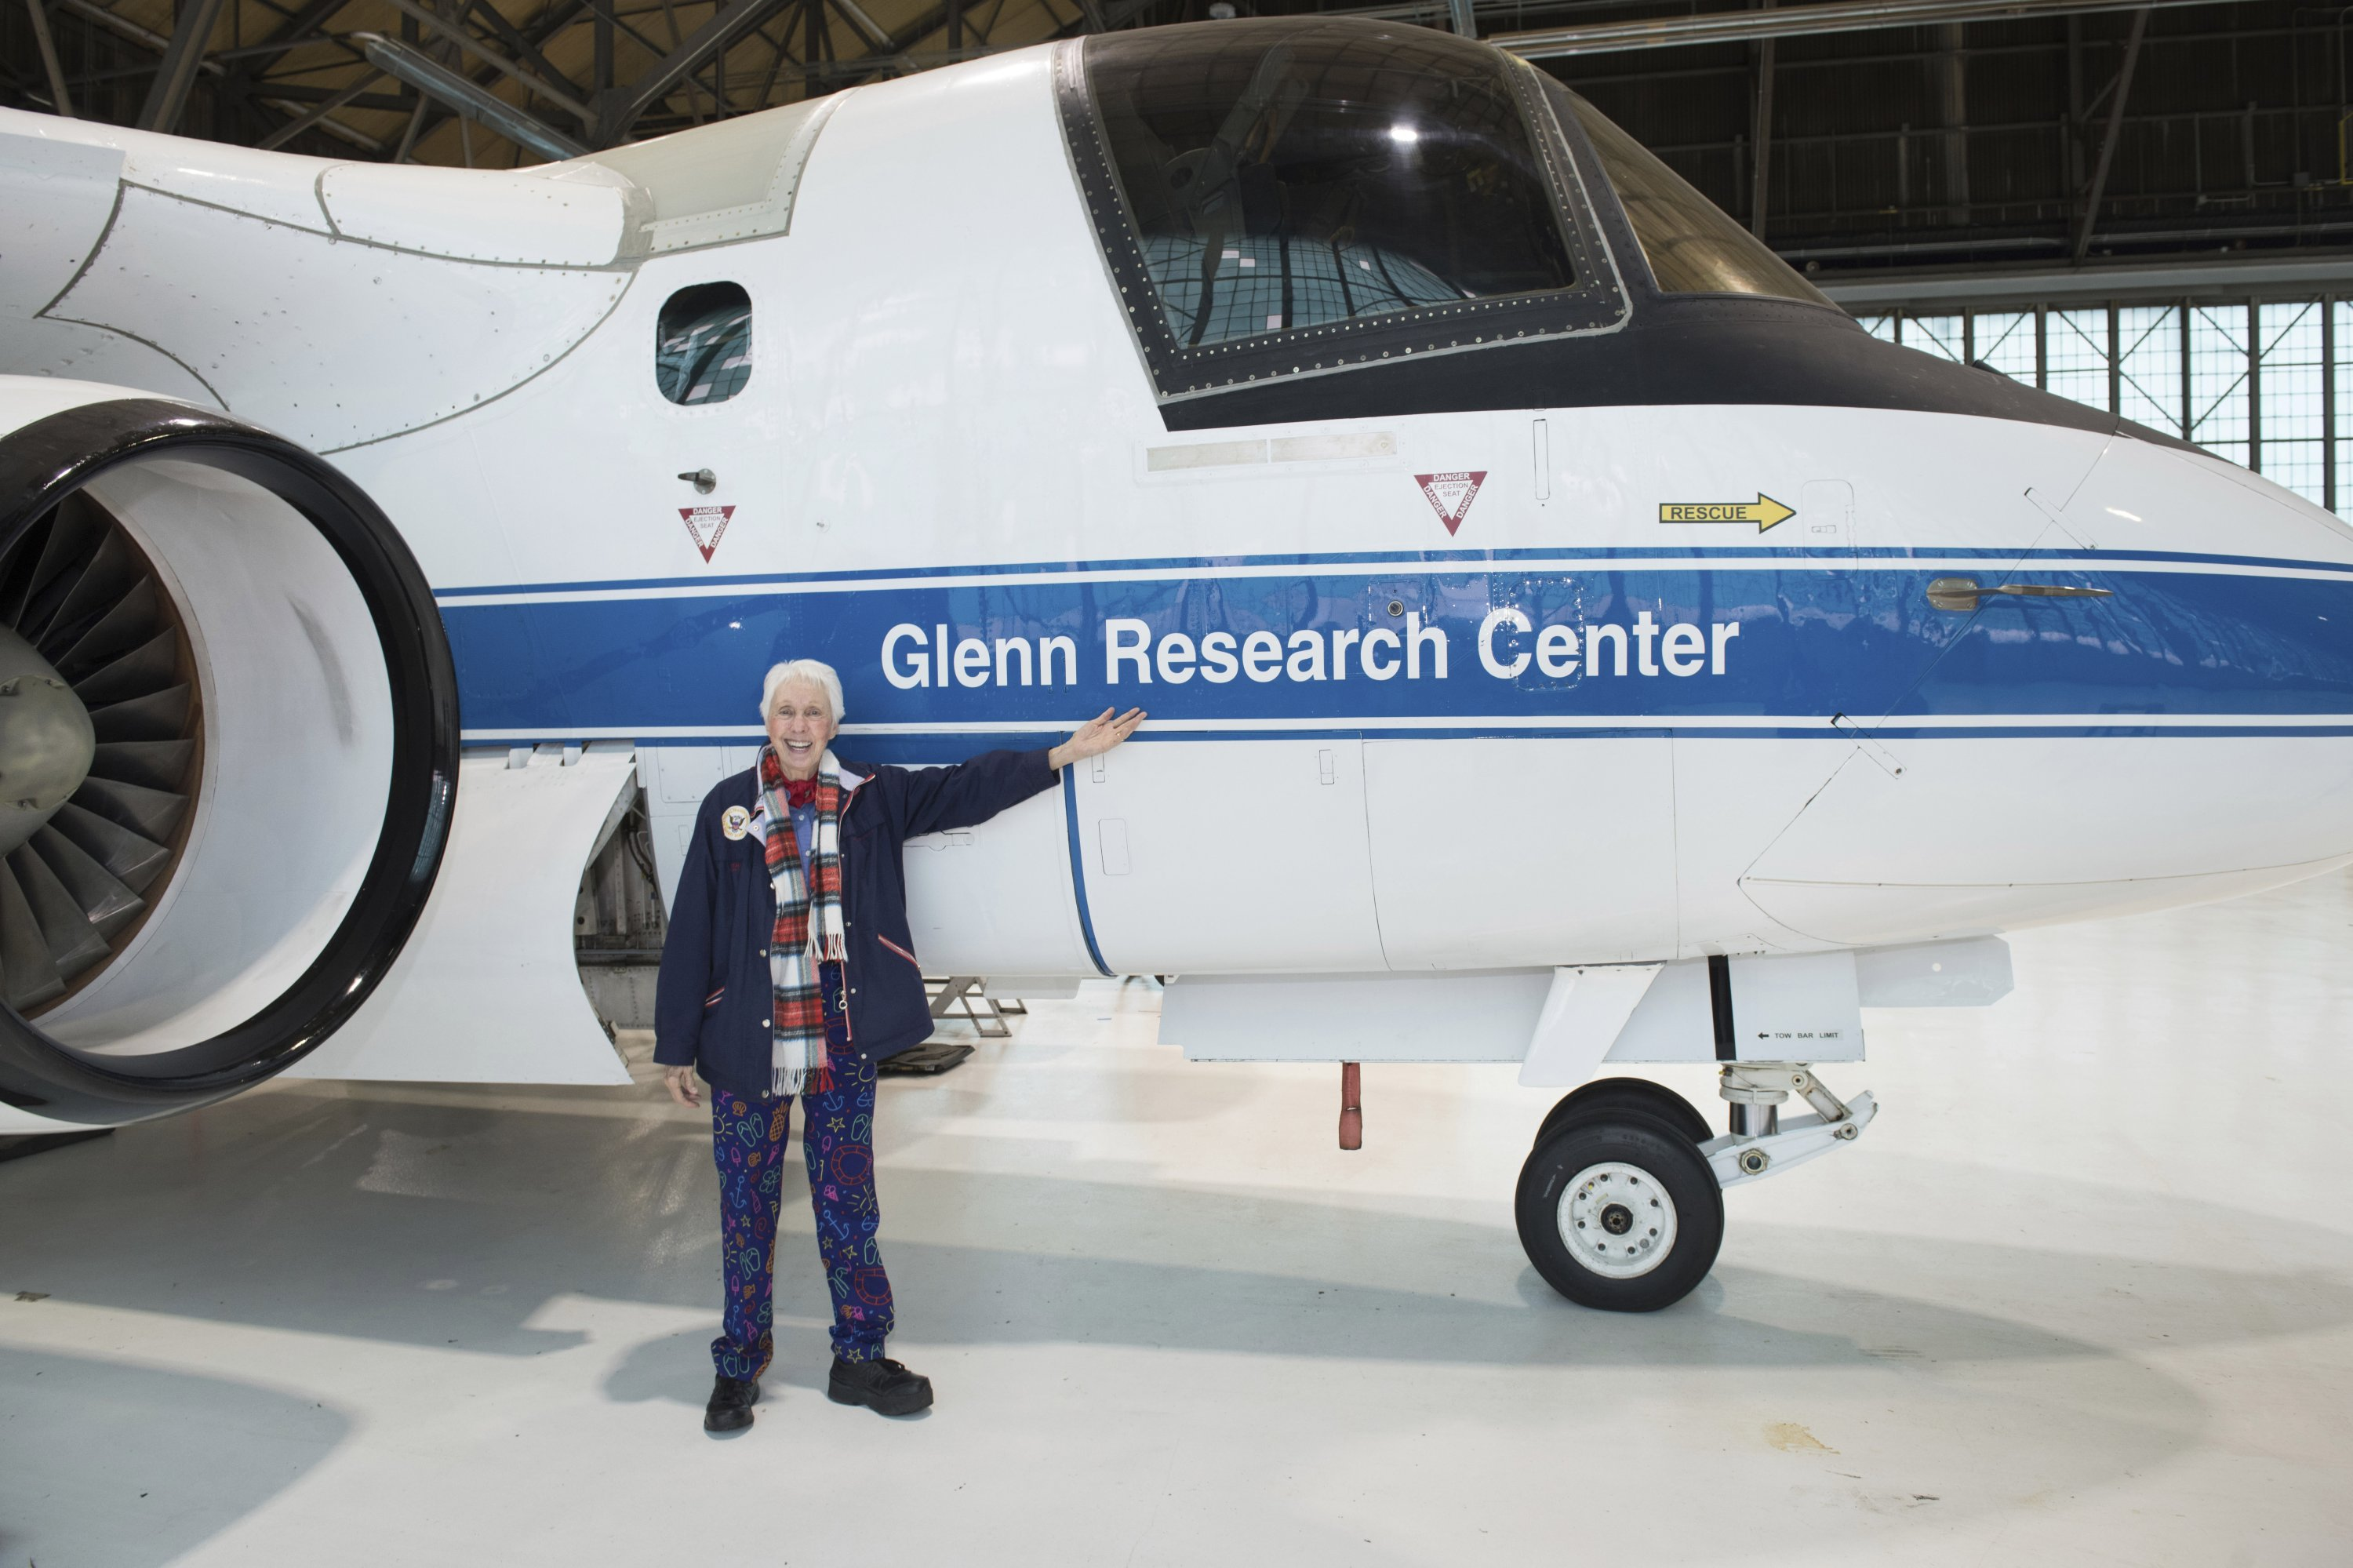 Mercury 13 astronaut trainee Wally Funk visits the Glenn Research Center at Lewis Field in Cleveland, Ohio, U.S., 2019. (NASA via AP)